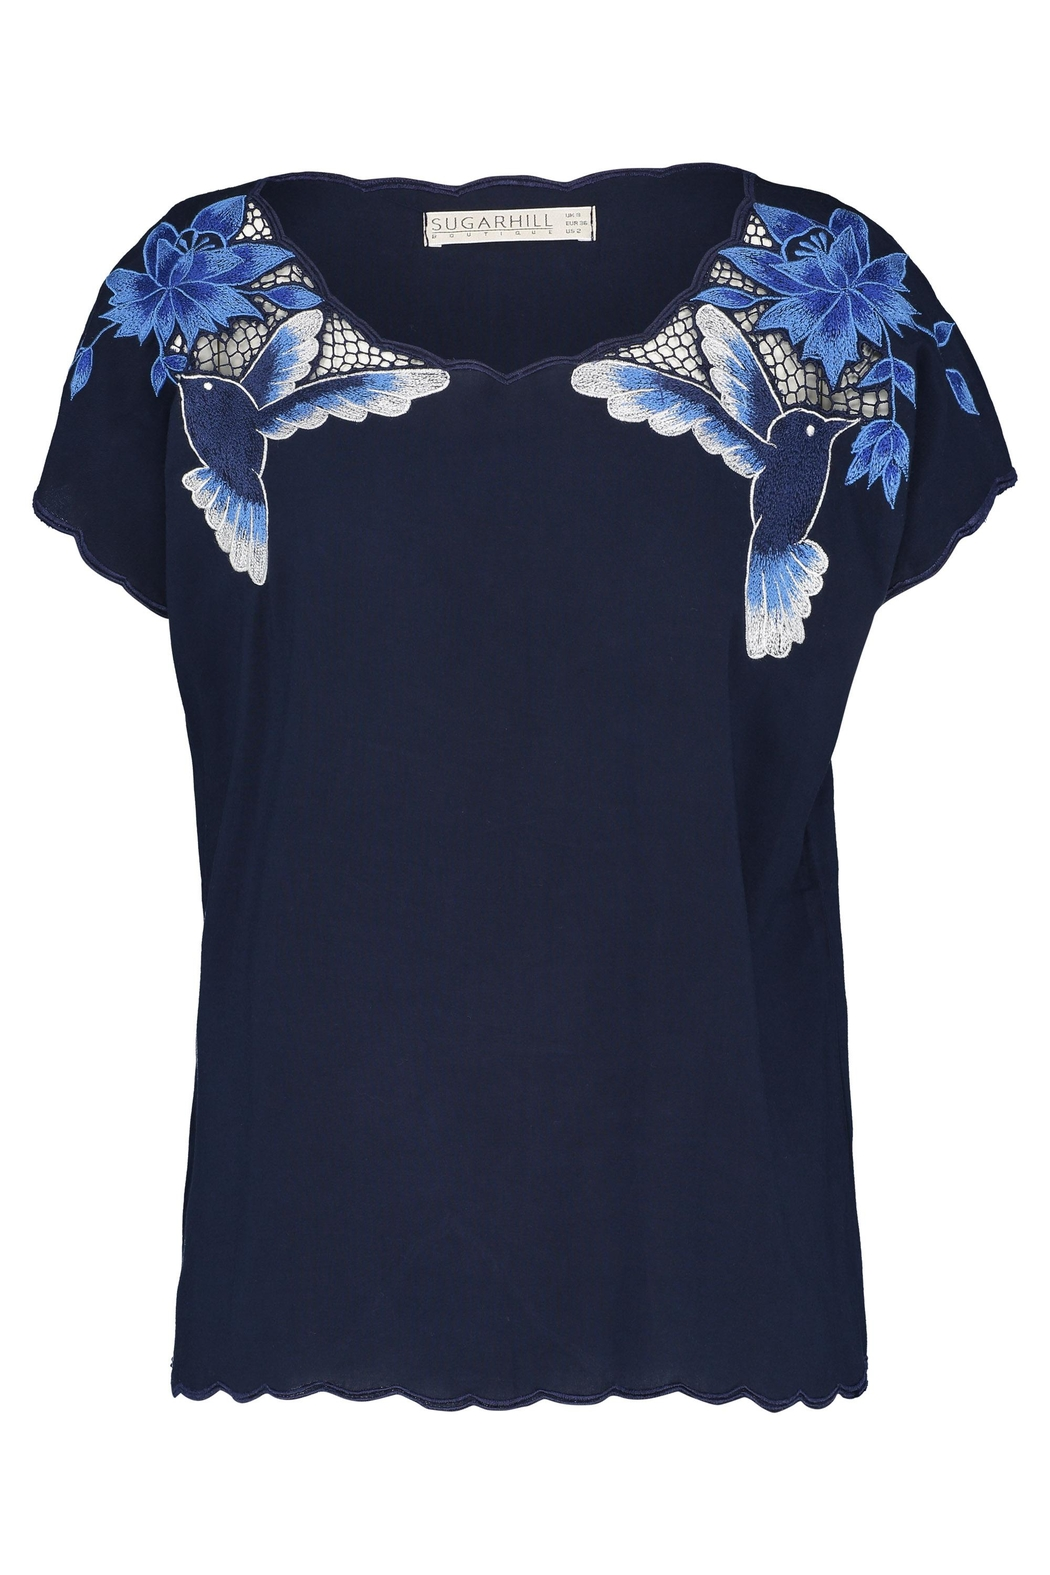 Sugarhill Boutique Hummingbird Cutwork Top - Front Cropped Image